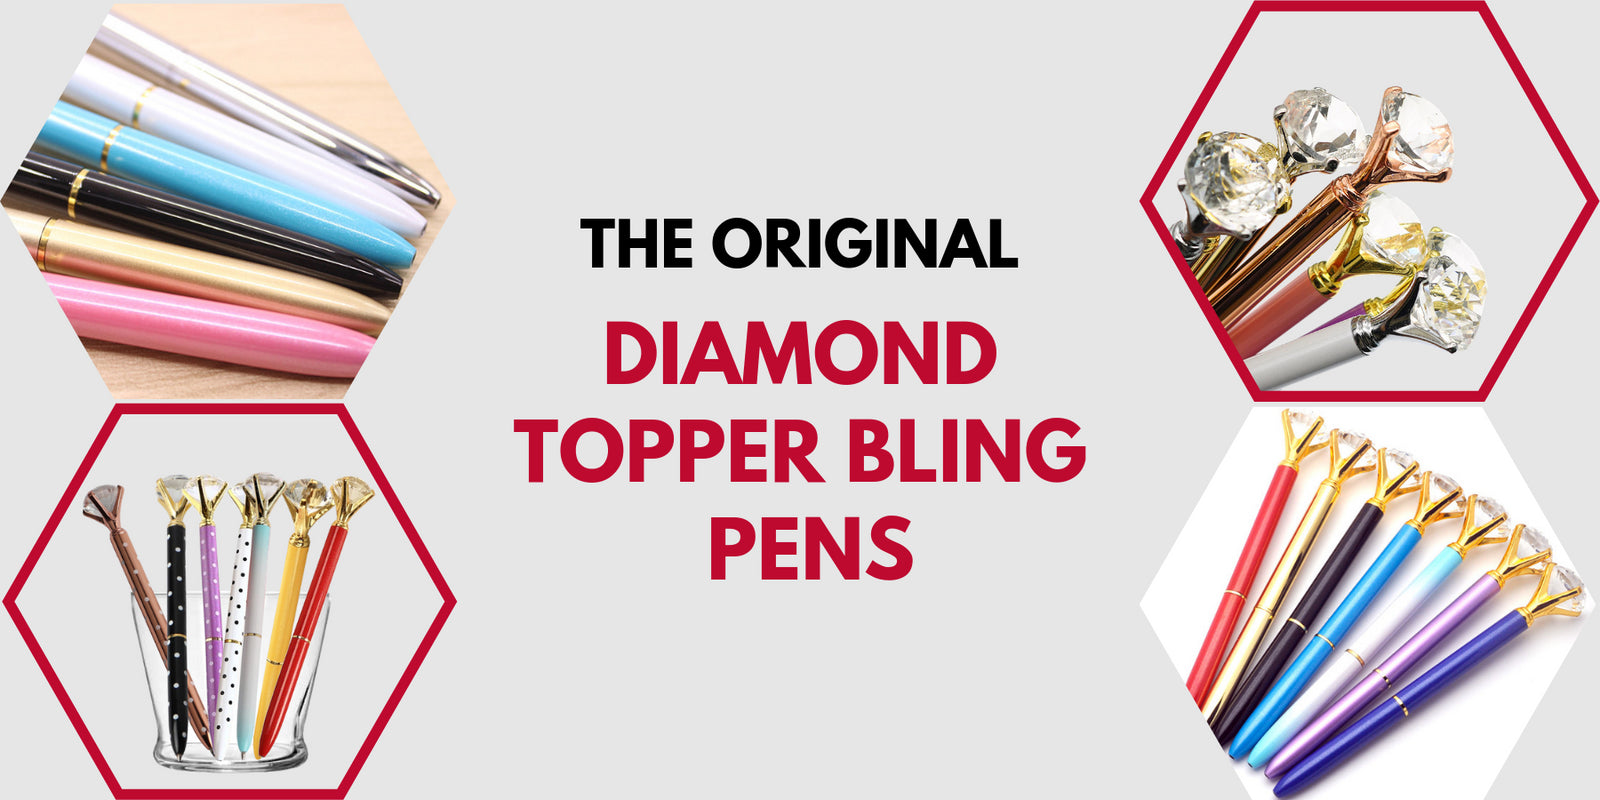 VLU STYLE The Original Diamond Topper Bling Pens